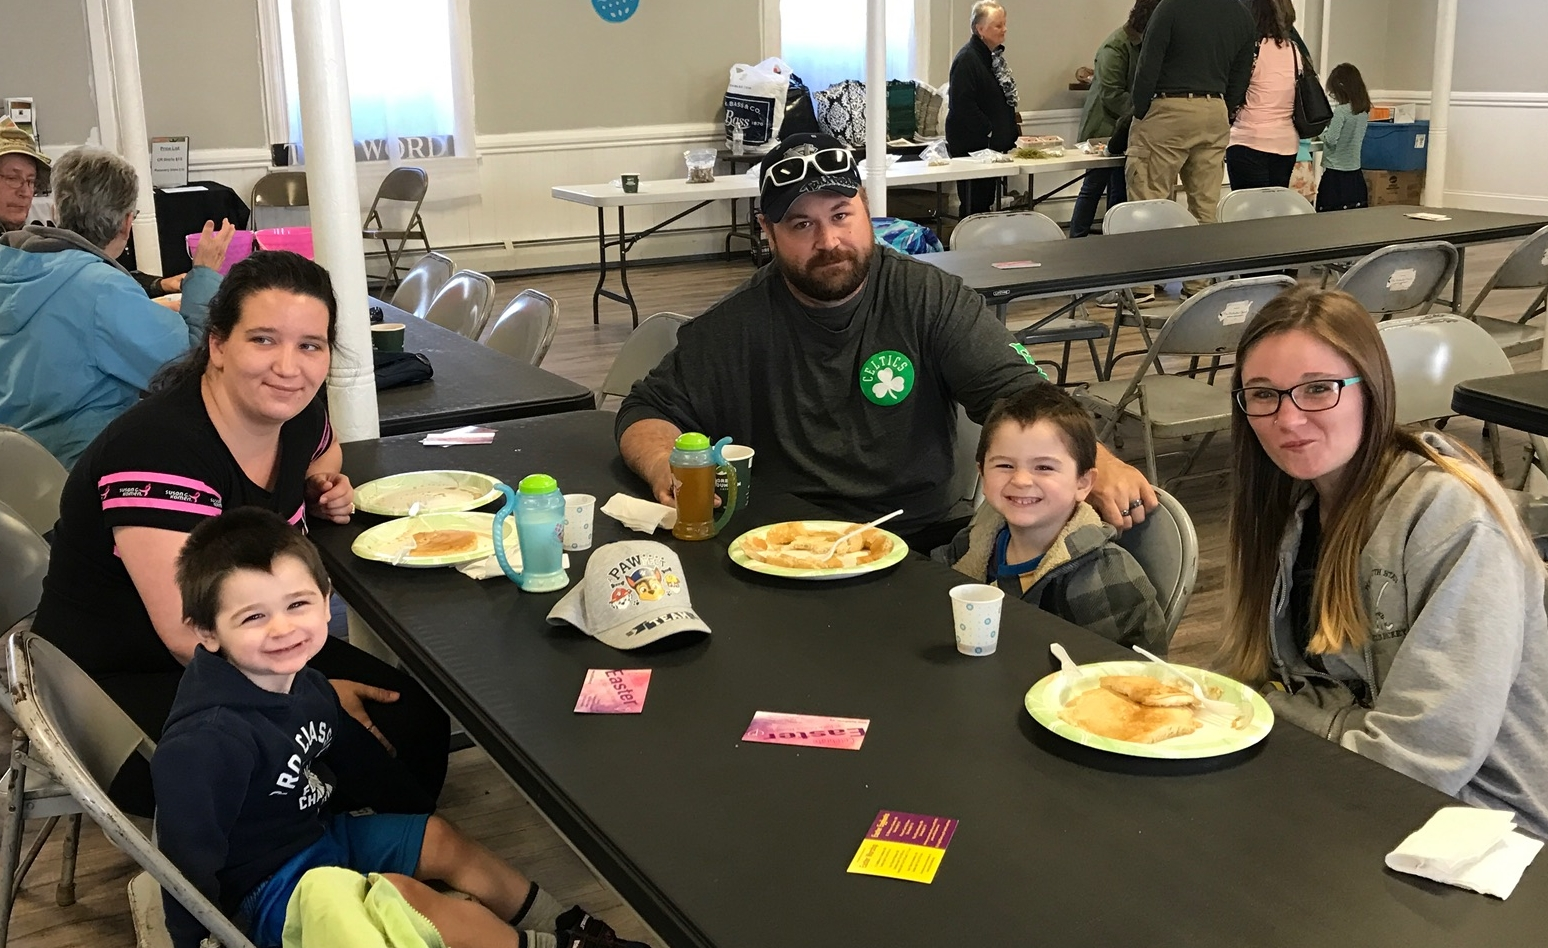 The Pancake Breakfast and Egg Hunt in Amesbury raised over $250 for the Amesbury PTO and blessed many families with the Good News of Jesus.